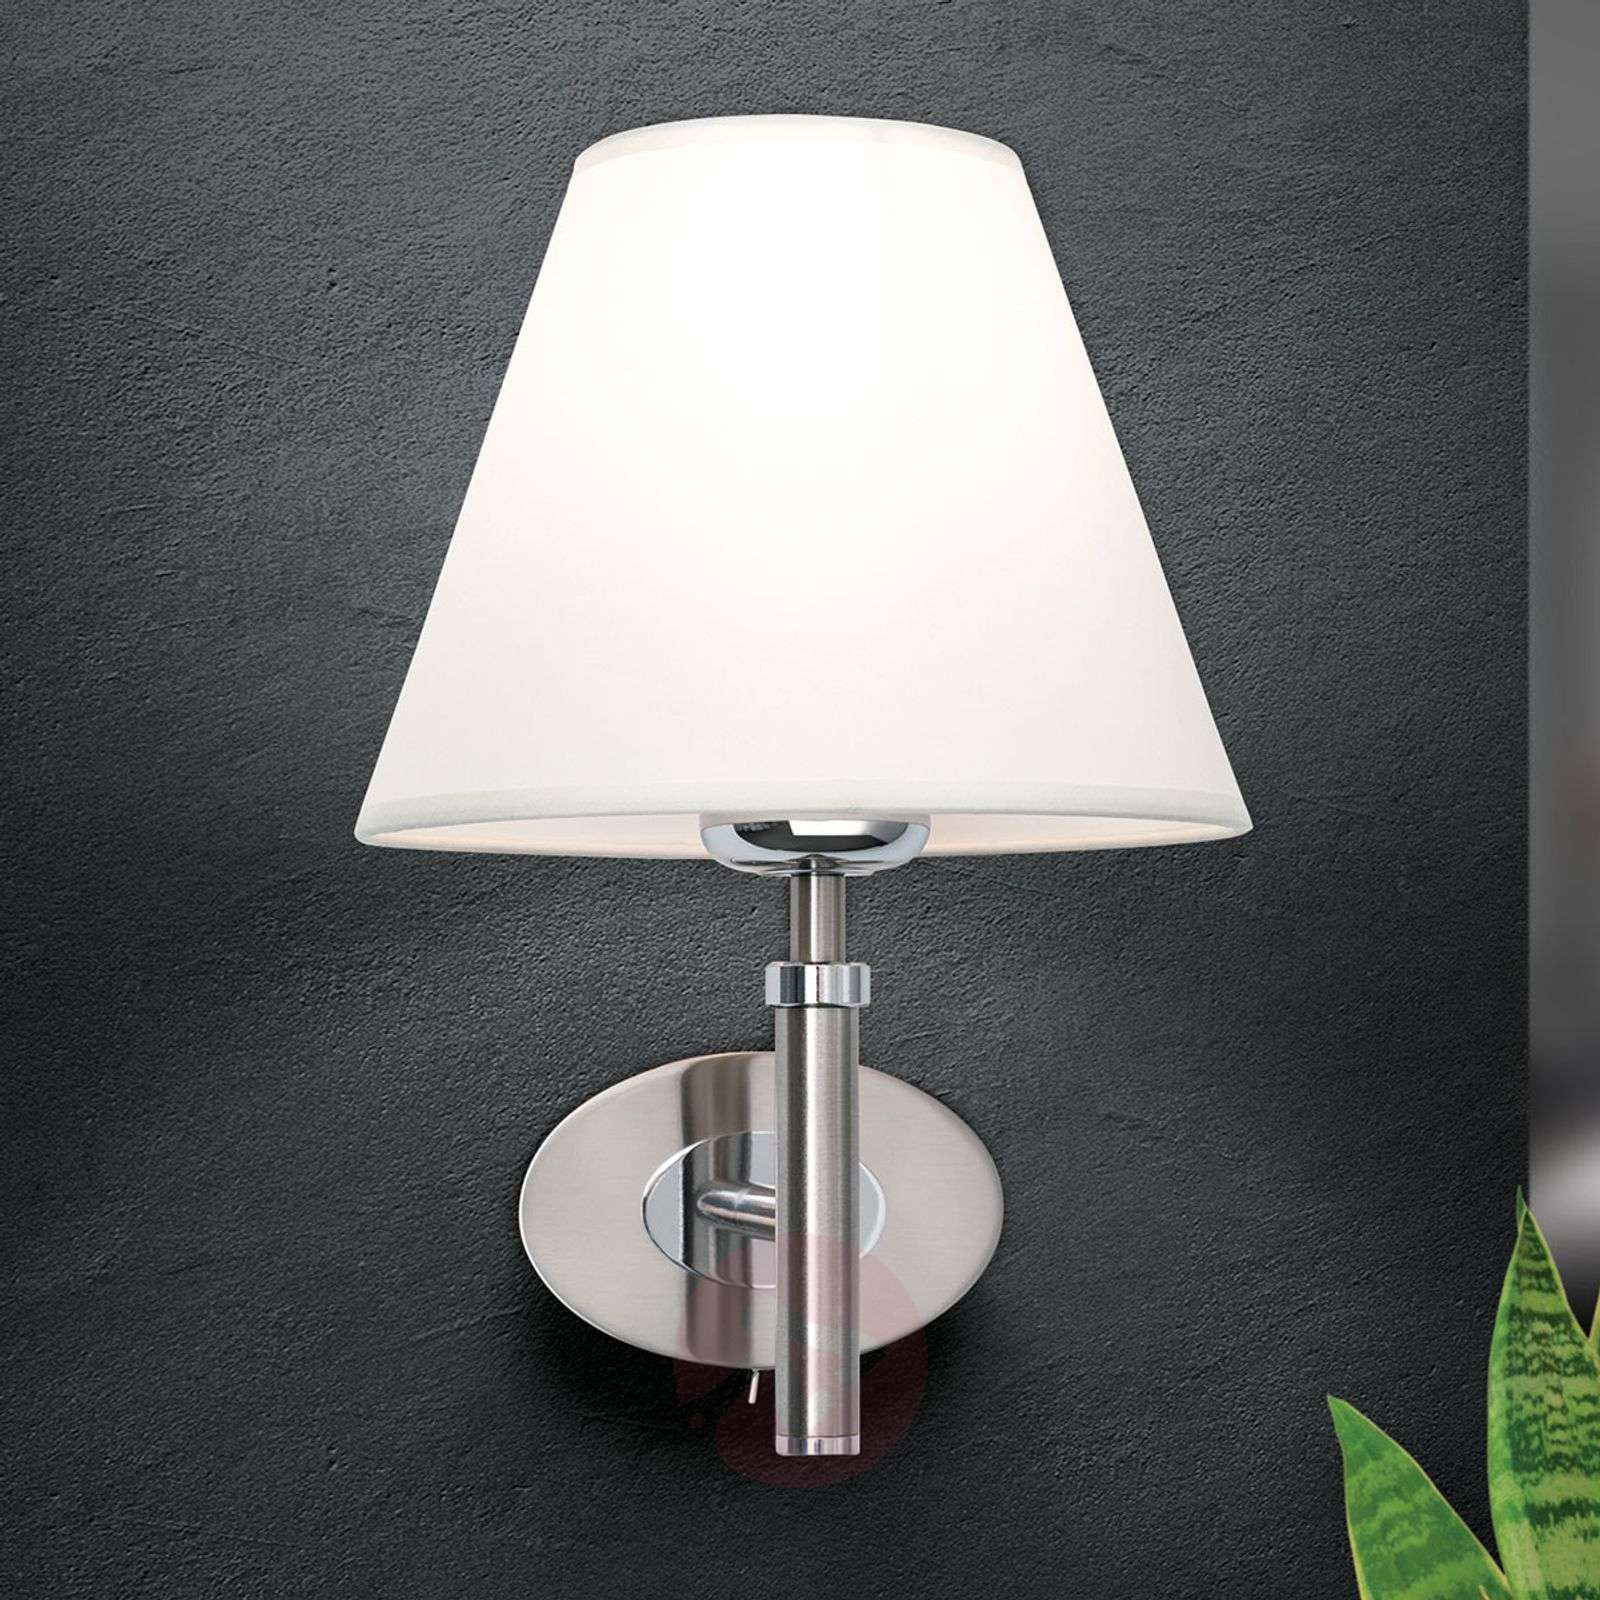 Lilly Nickel Wall Light with Fabric Shade-7254753-03